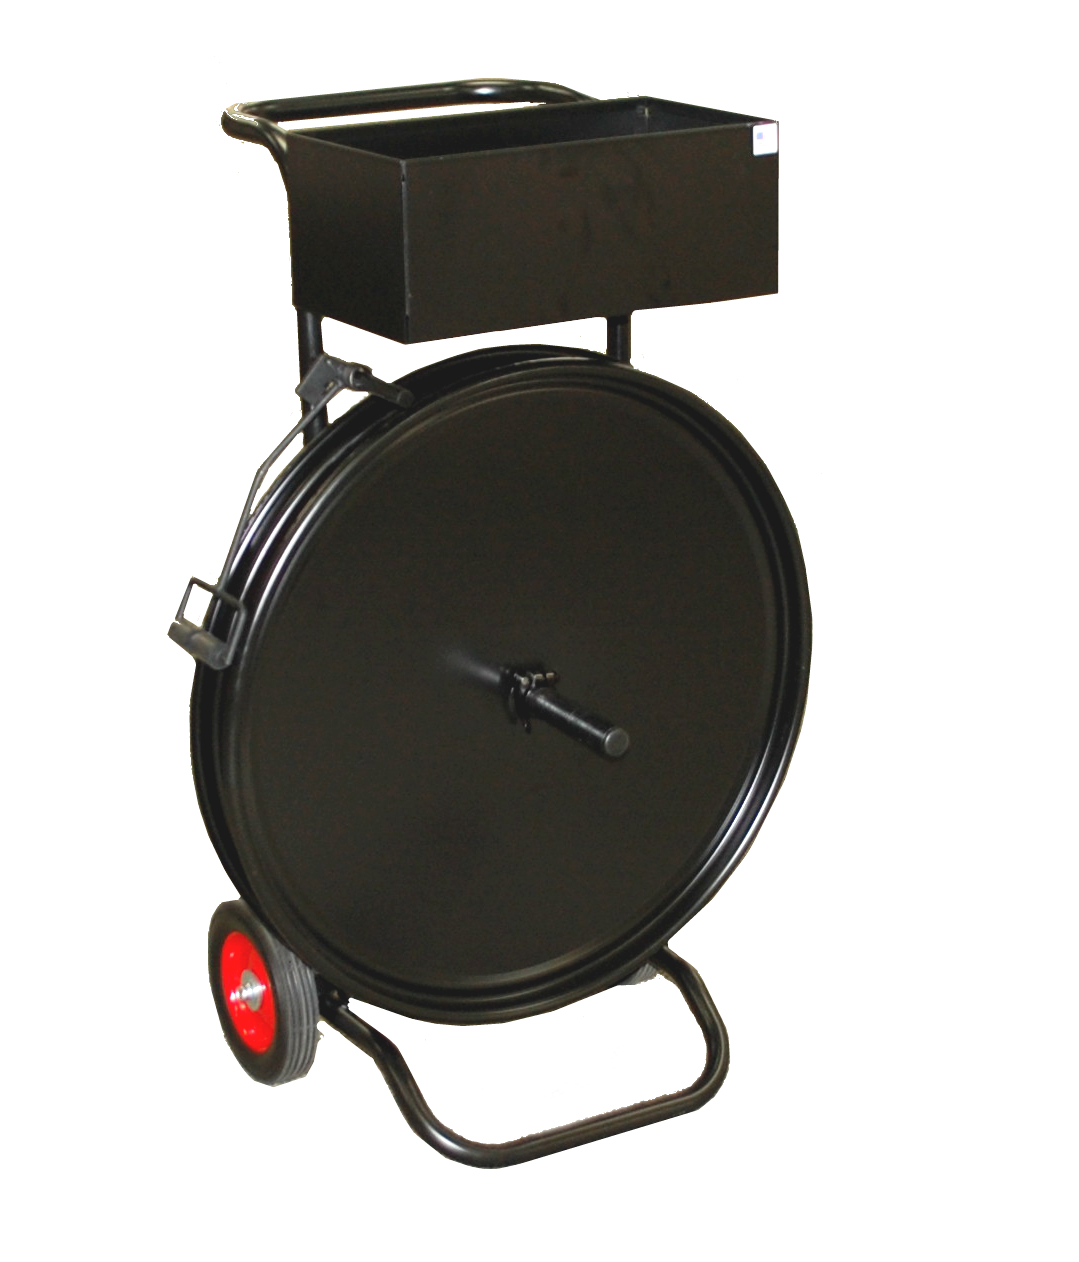 """Strapping Dispenser Cart - Steel or Polypro (8"""" x 8"""" or 3"""" x 16"""" Core)"""